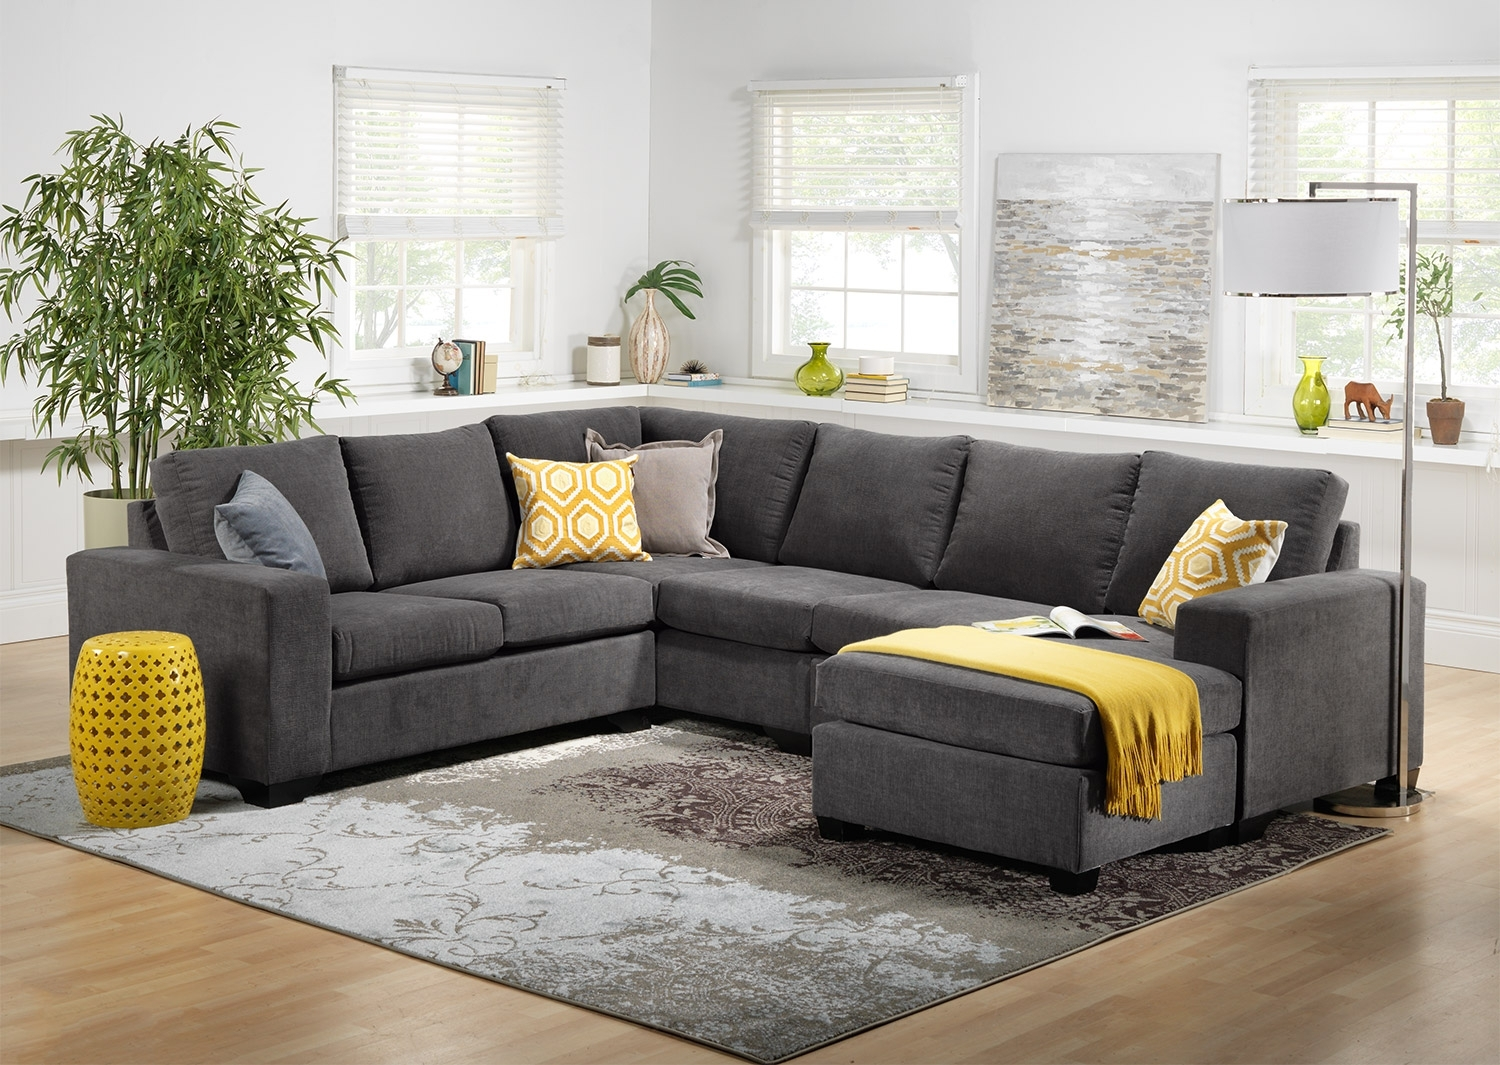 Used Sectional Sofas For Sale Edmonton Best Home Furniture Ideas Regarding Sectional Sofas At Edmonton (View 3 of 10)